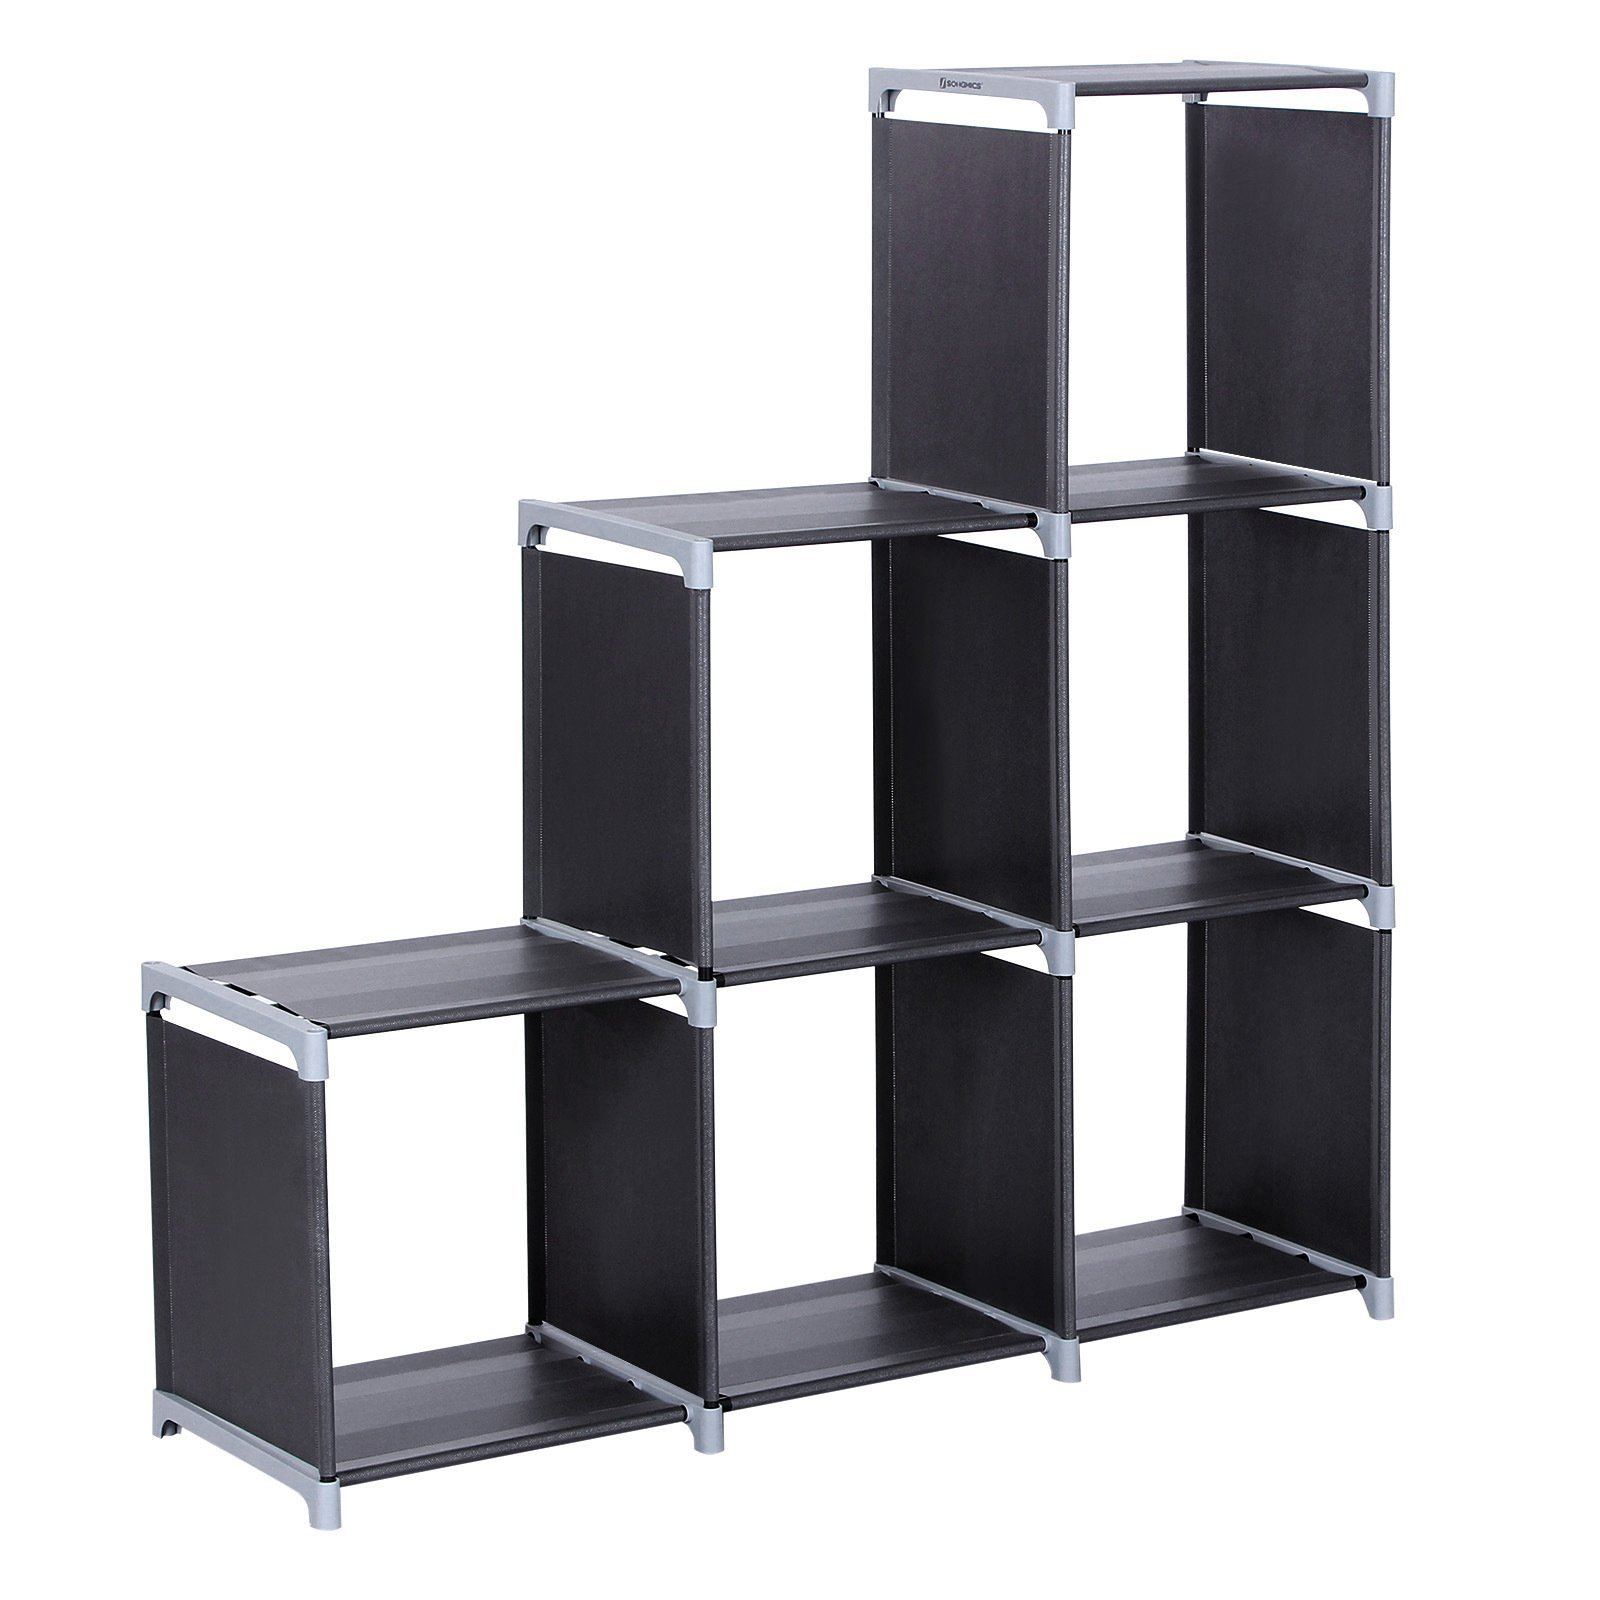 SONGMICS 3-Tier Storage Cube Closet Organizer Shelf 6-Cube Cabinet Bookcase Black ULSN63H